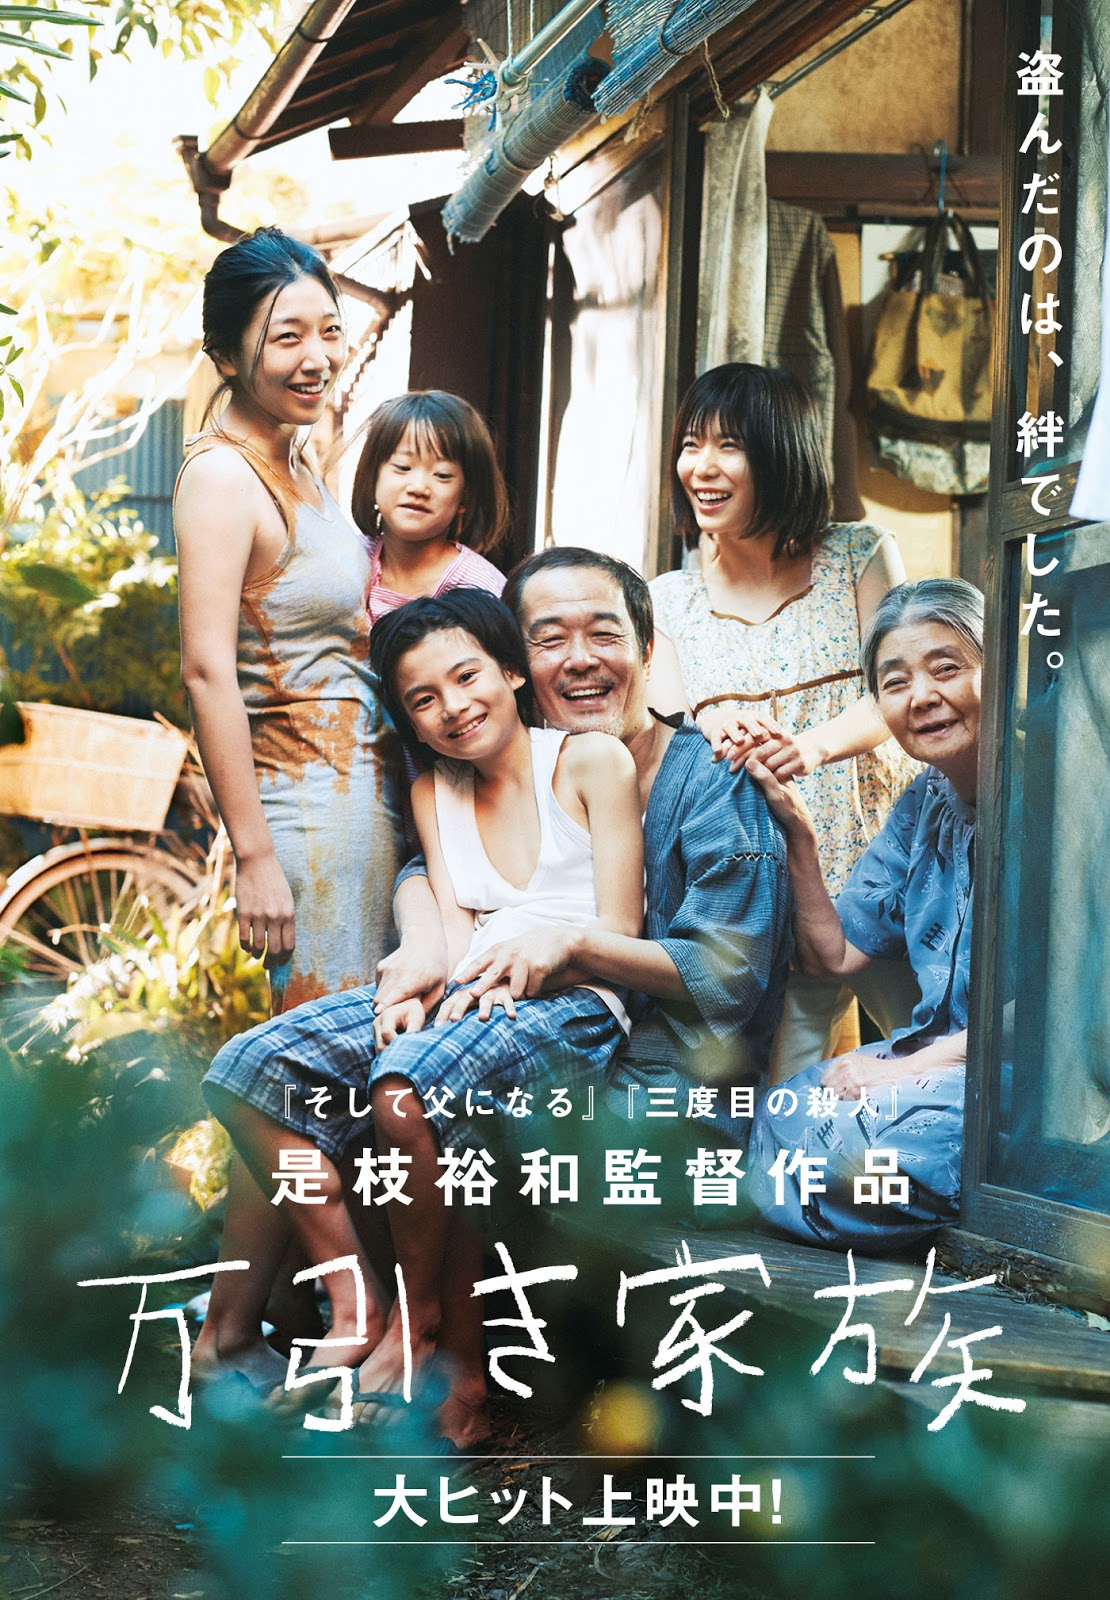 PennsylvAsia: Japanese movie Shoplifters (万引き家族) coming